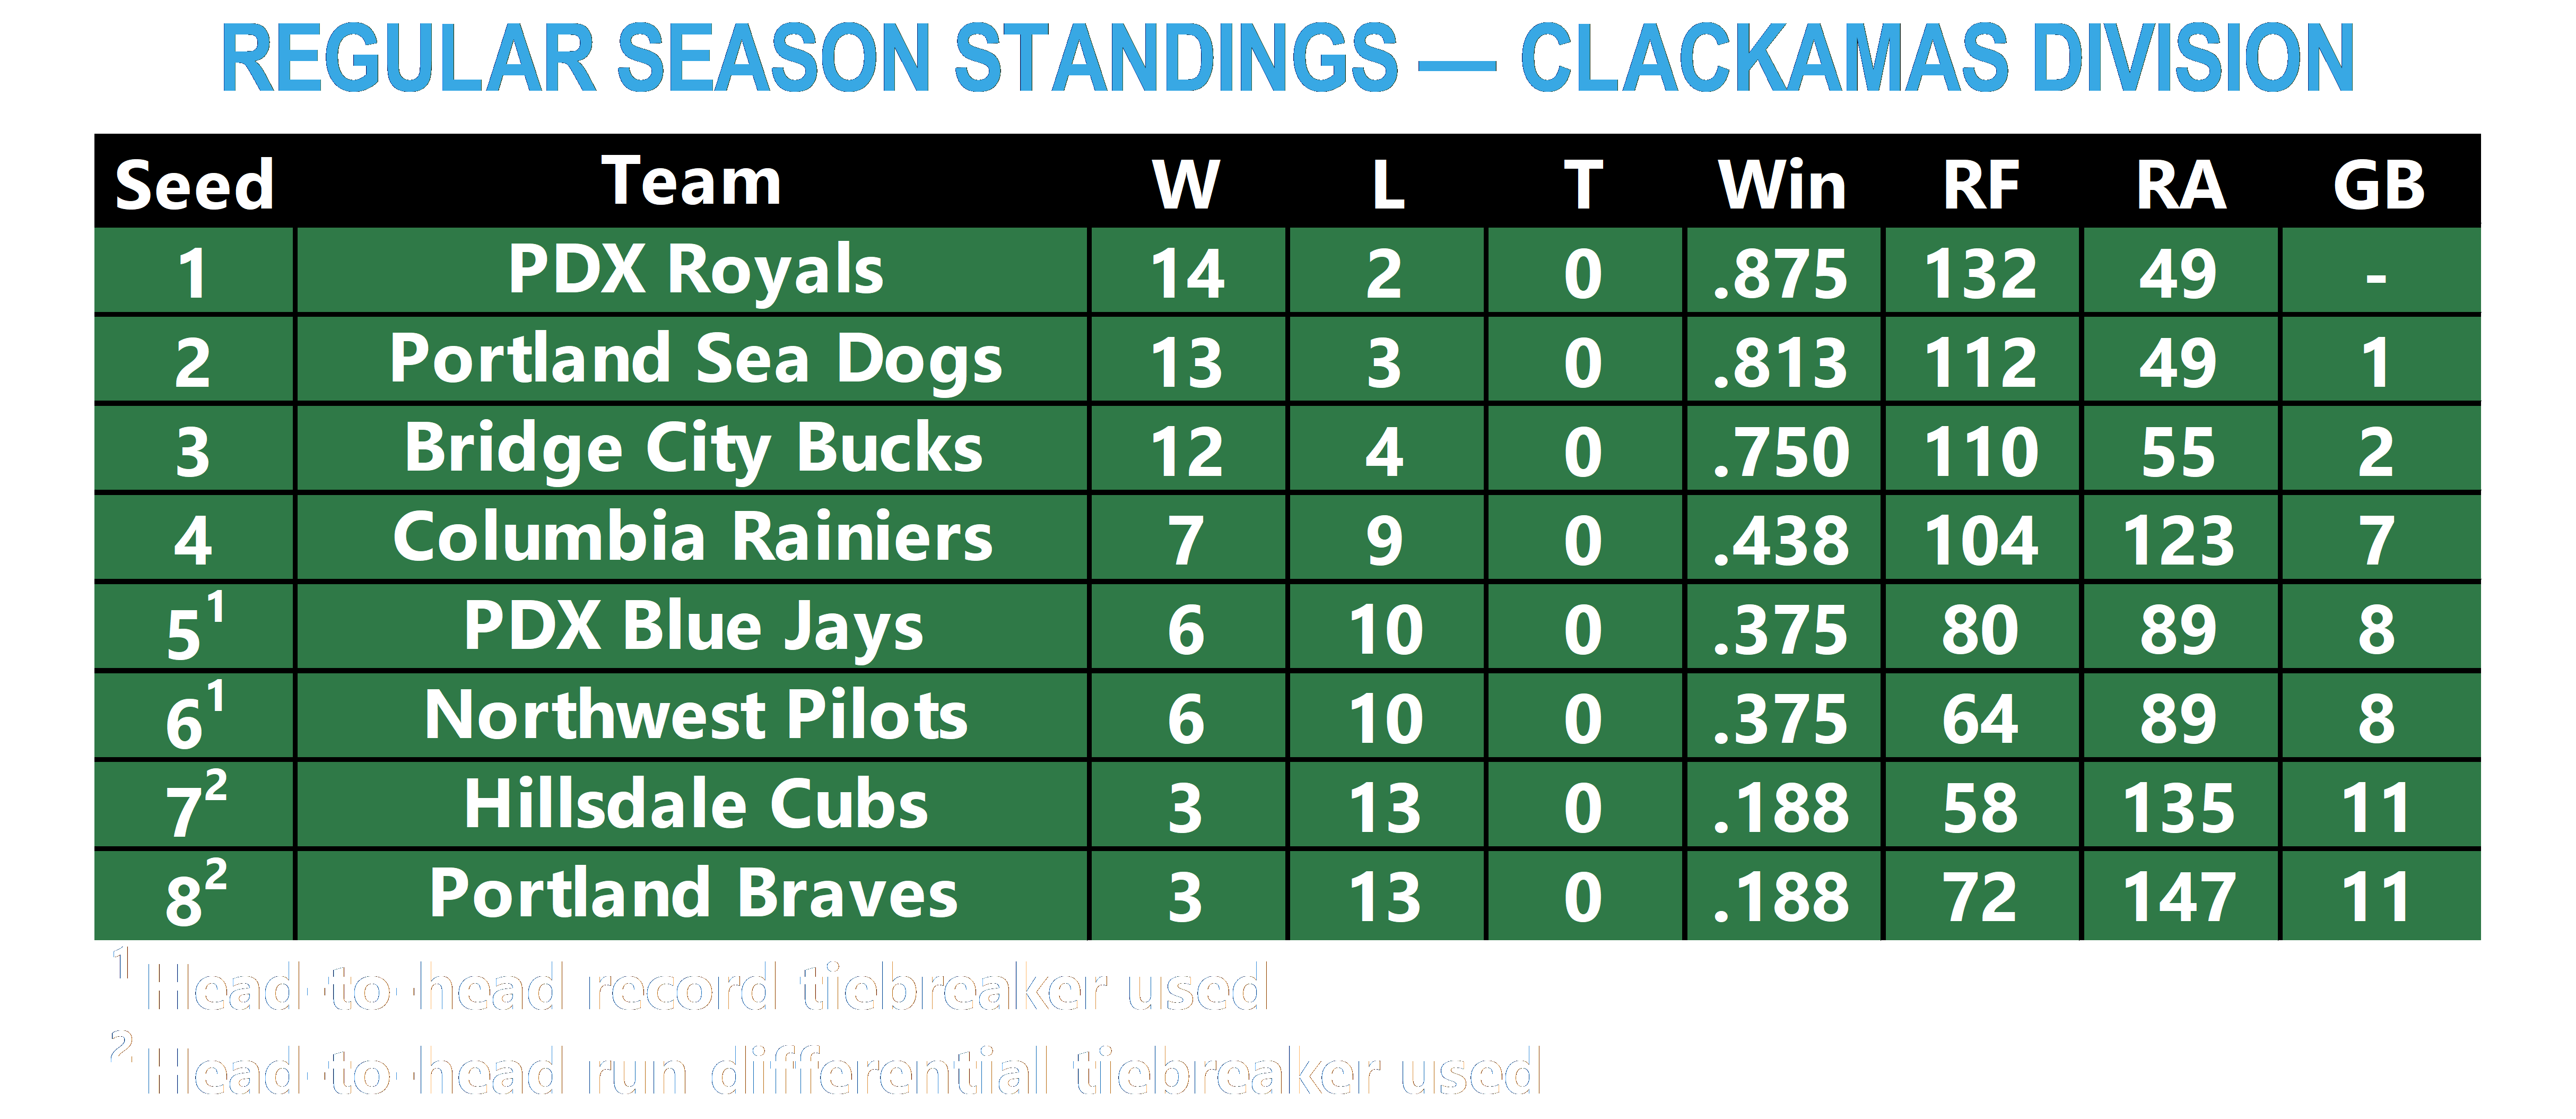 Regular Season Standings